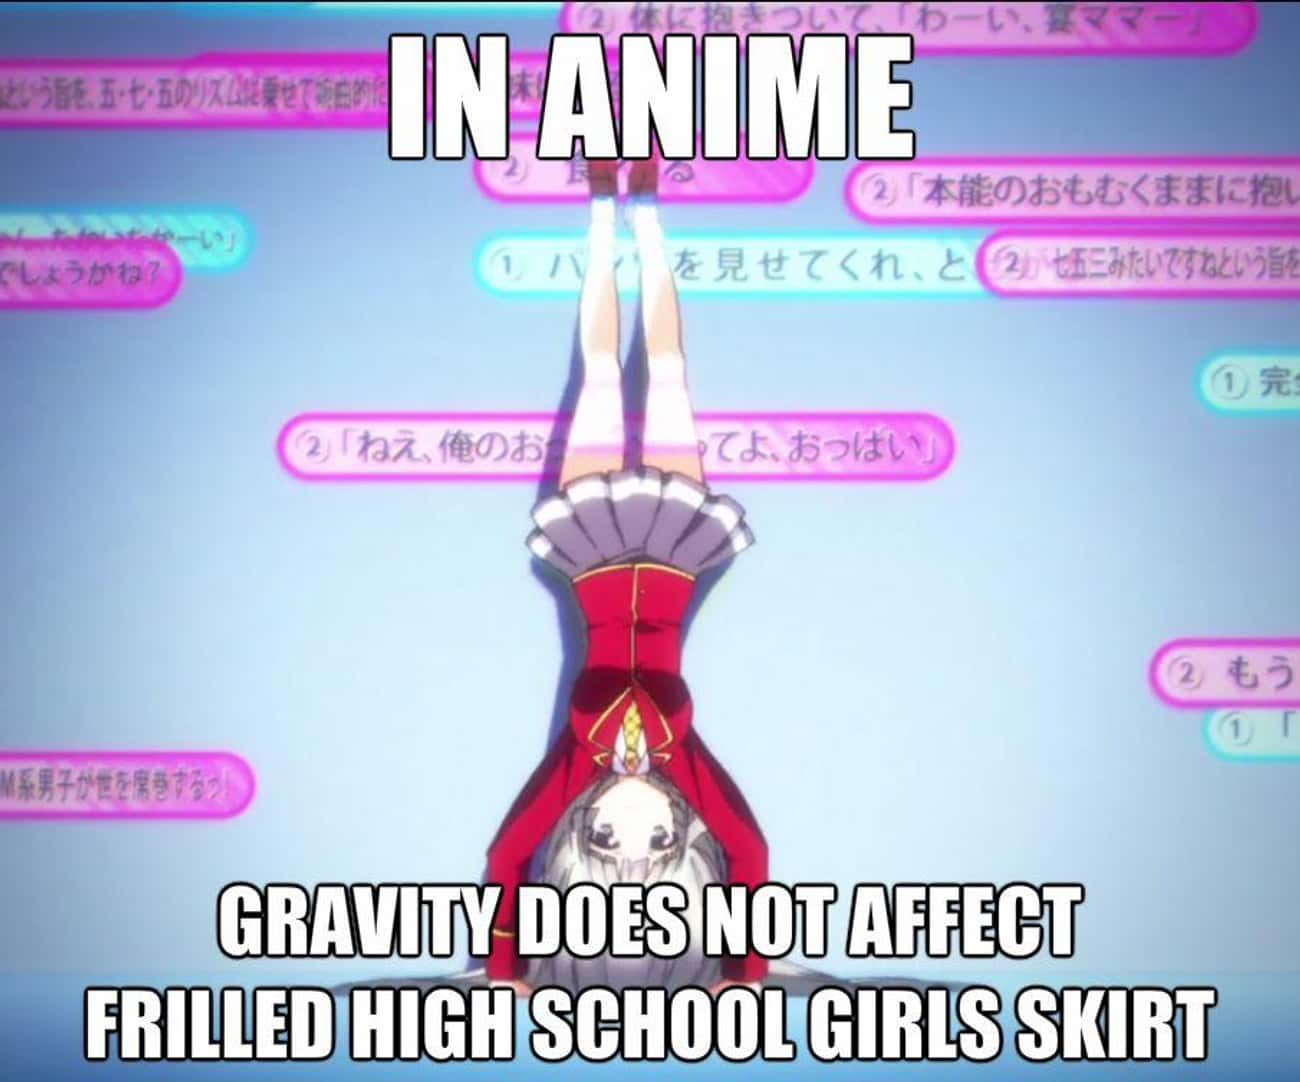 High School Girls Skirts is listed (or ranked) 4 on the list 25 Examples Of Silly Anime Logic That Fans Just Roll With